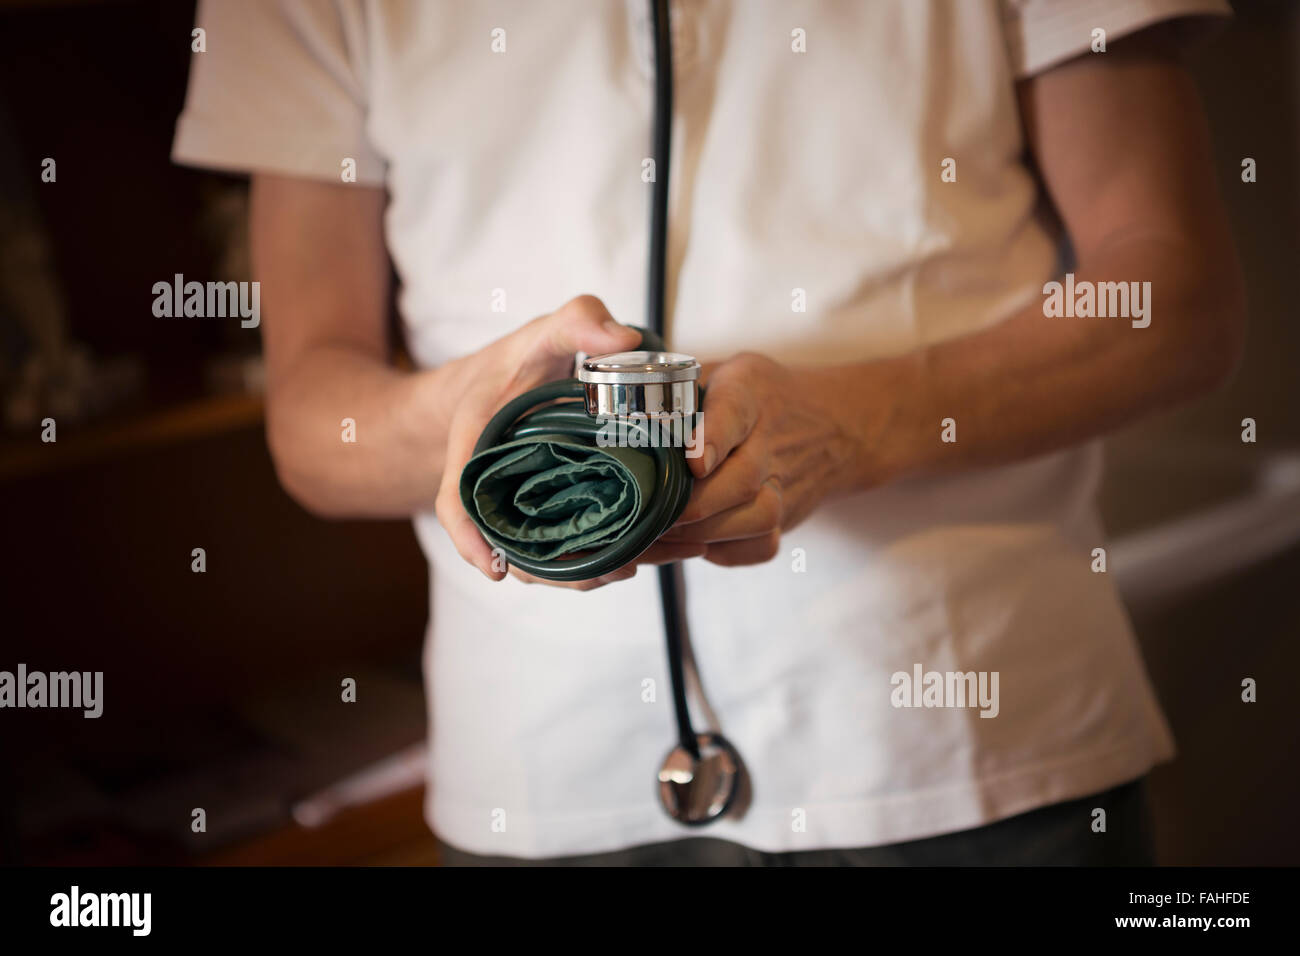 Doctor holding a blood pressure cuff and wearing a stethoscope Stock Photo